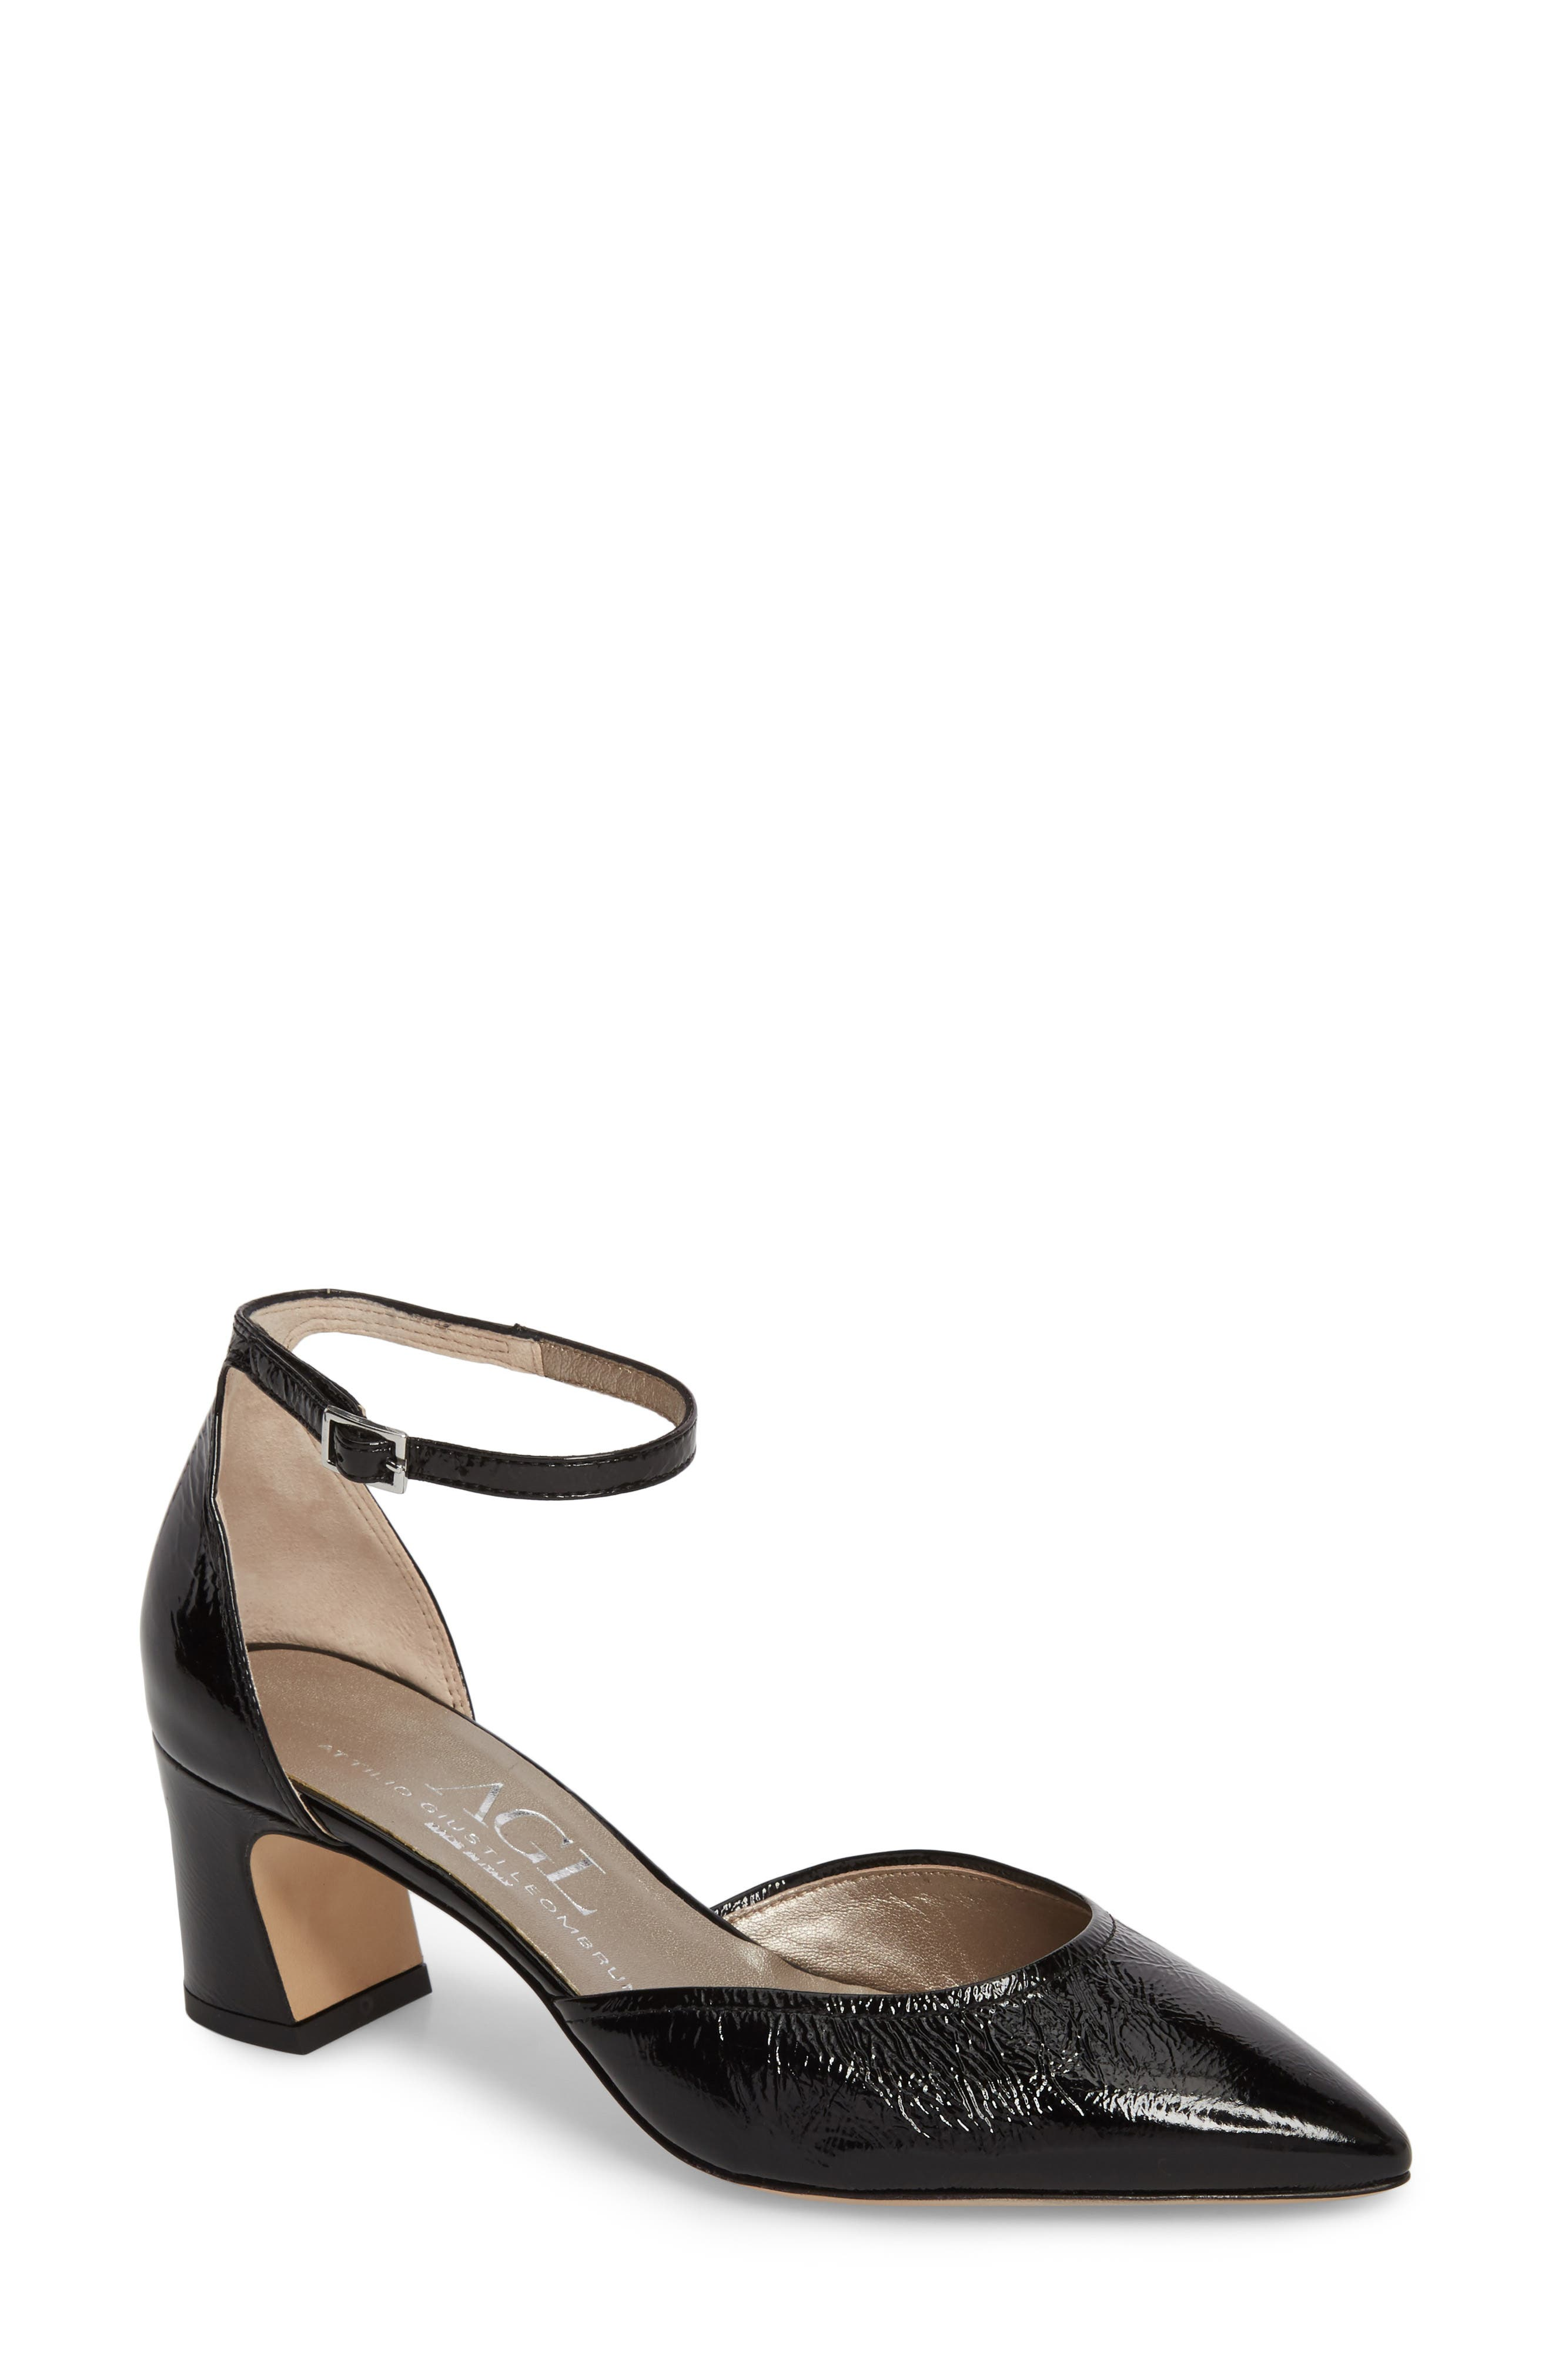 d'Orsay Ankle Strap Pump,                             Main thumbnail 1, color,                             BLACK GLAMMY LEATHER